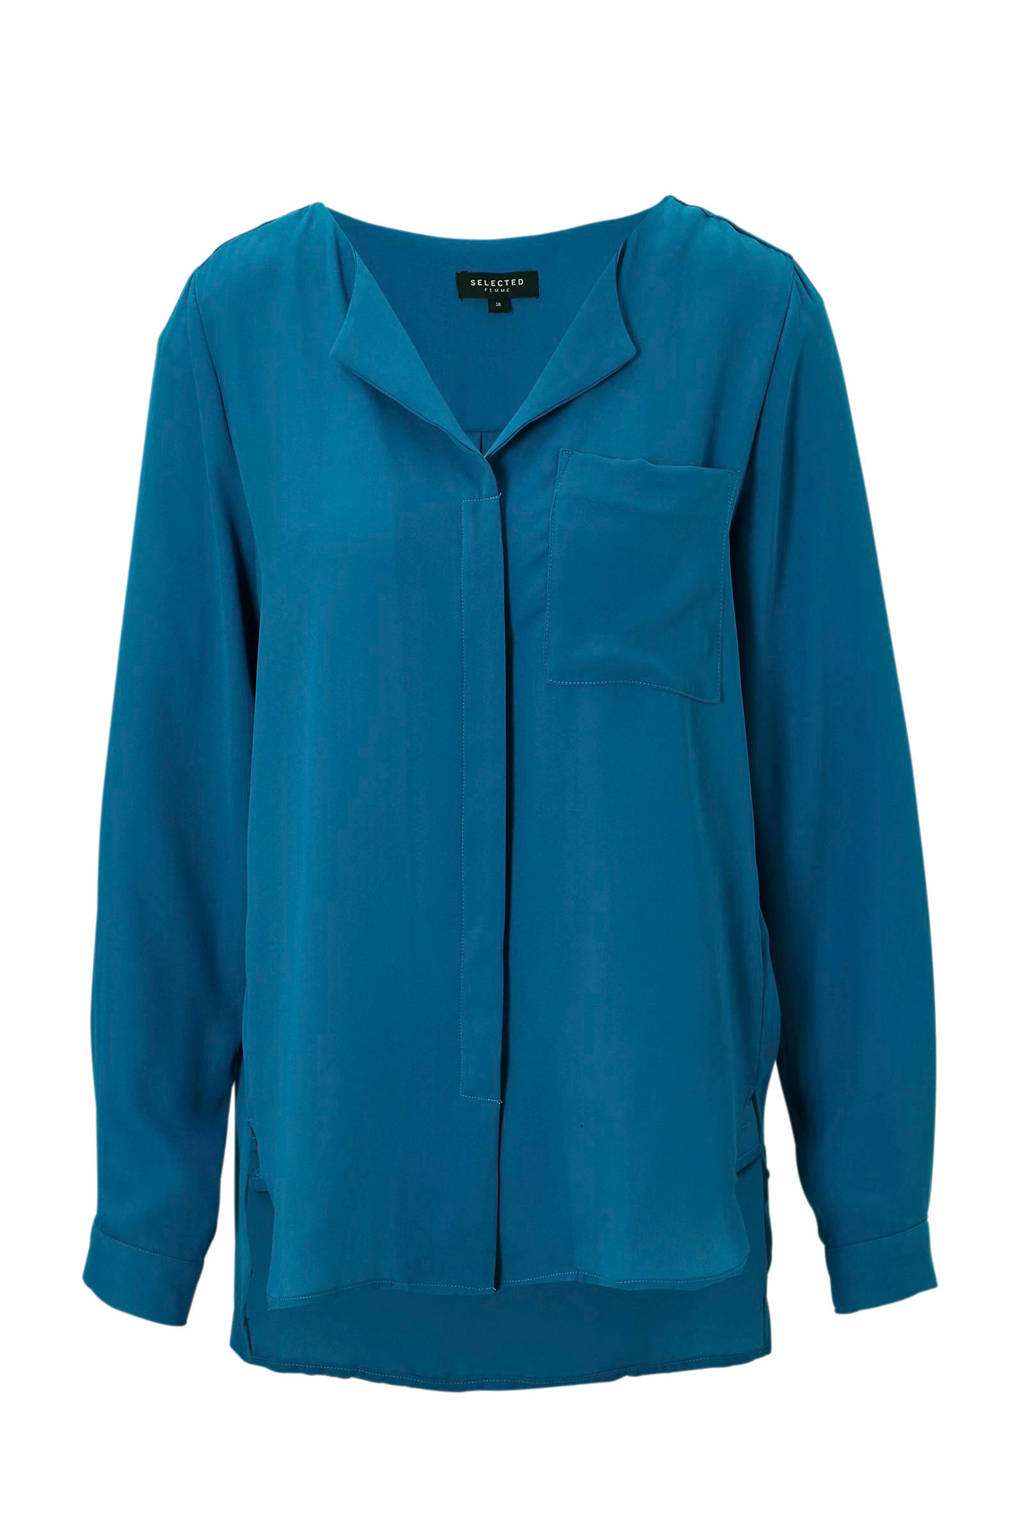 SELECTED FEMME blouse, Blauw